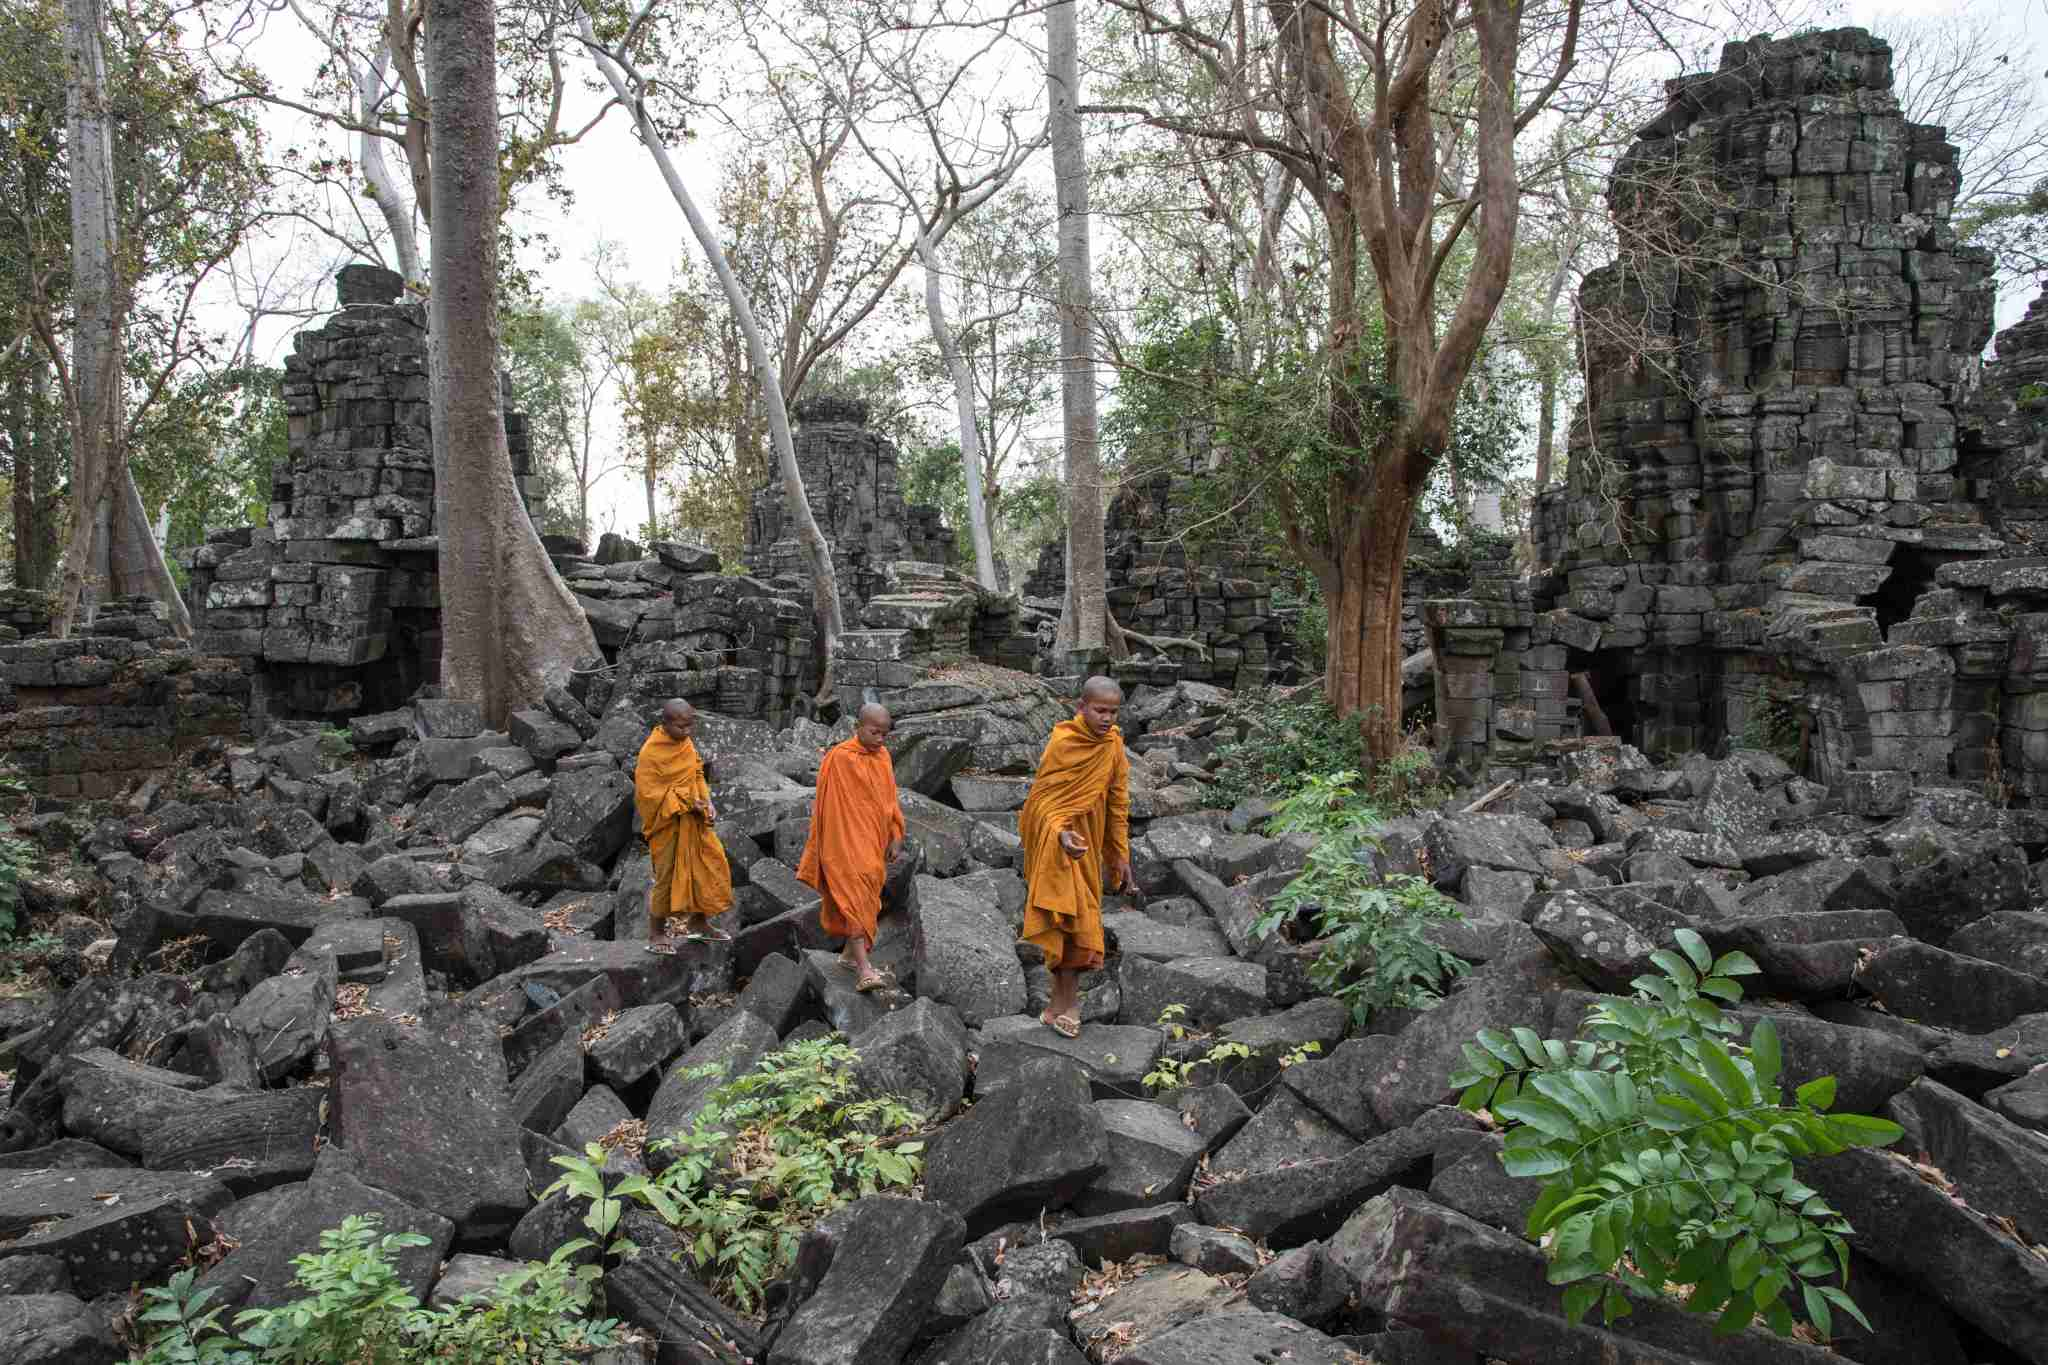 BANTEAY CHHMAR, BANTEAY MEANCHEY, CAMBODIA - 2015/02/18: Young Buddhist monks walk in the central sanctuary of Banteay Chhmar temple. The temple, built in the 12th century by king Jayavarman VII and located 150 kilometers north west of Angkor, is one of the largest of the Khmer empire. It is considered as a prototype for the famous Angkor Thom